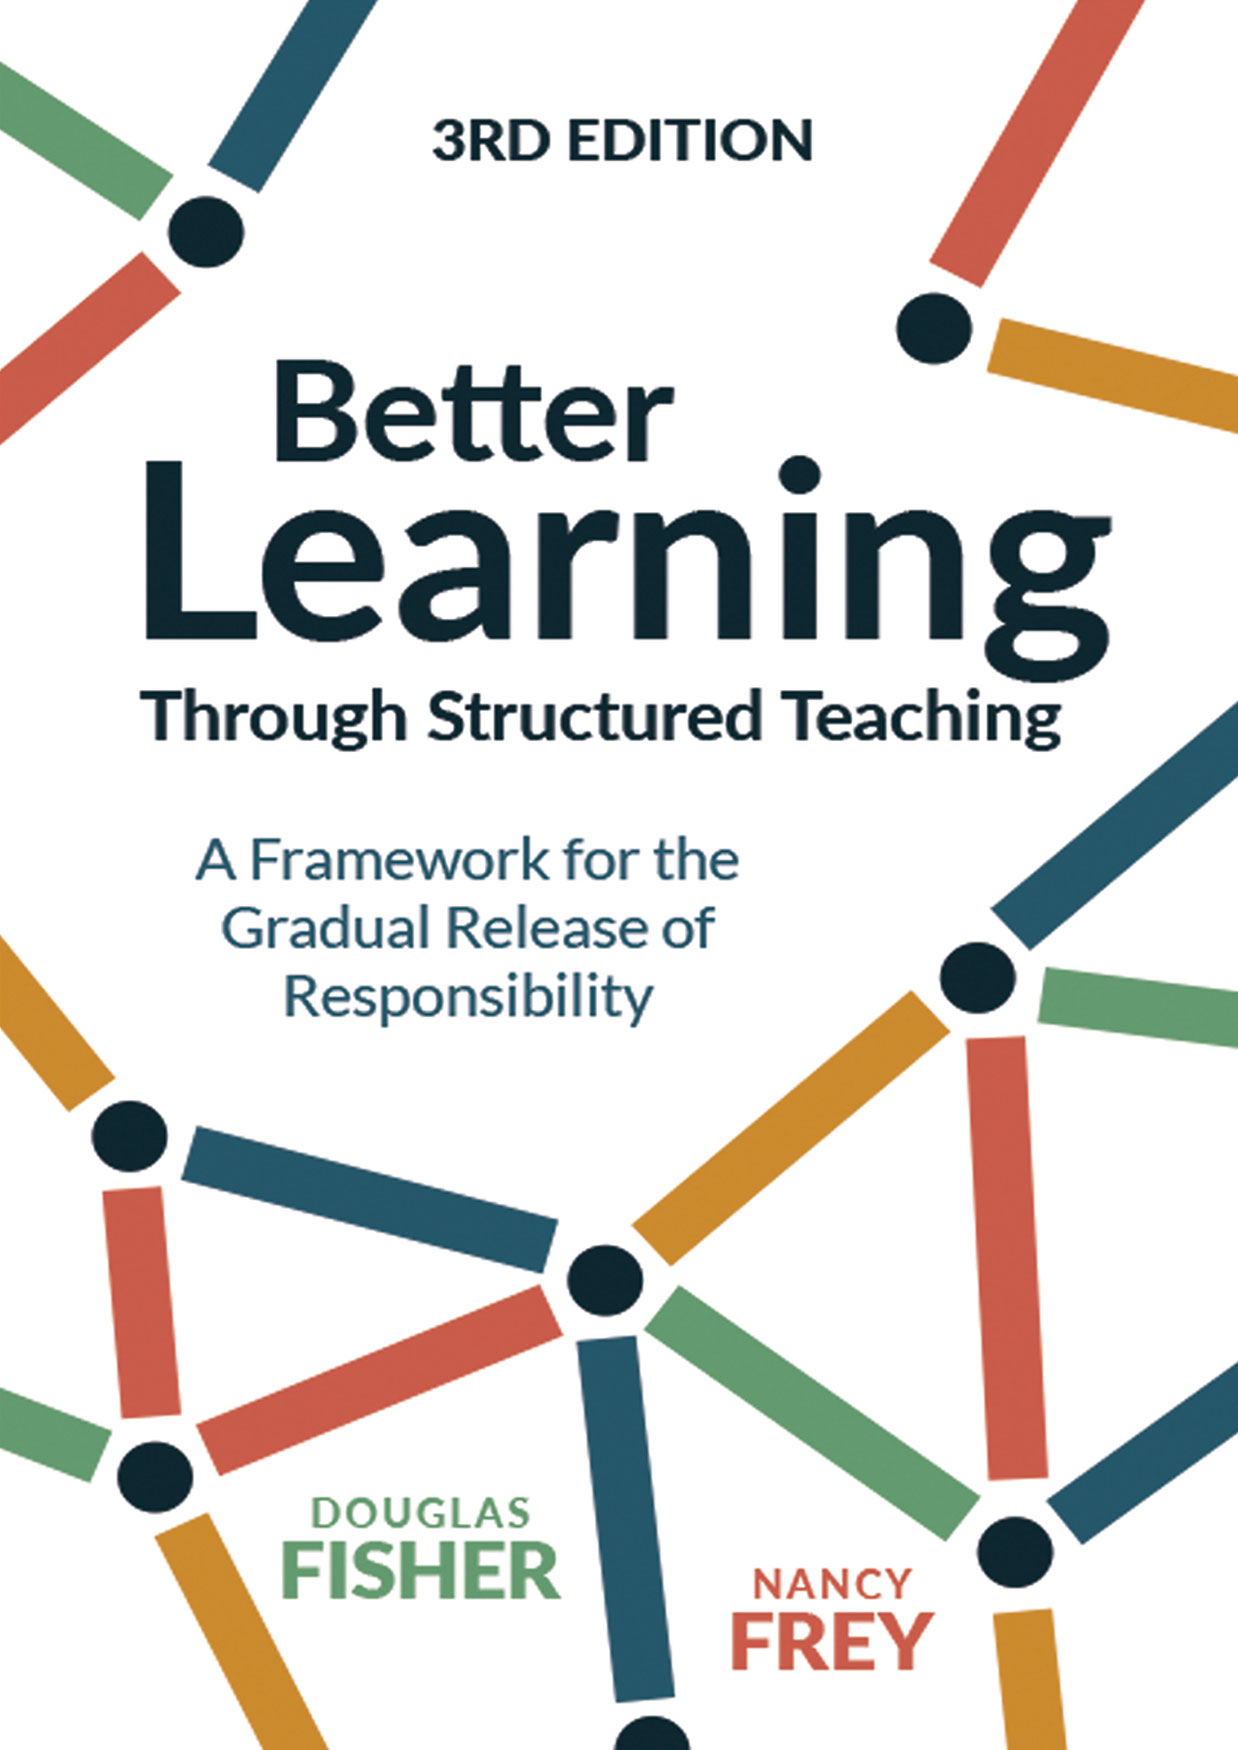 Better Learning Through Structured Teaching: A Framework for the Gradual Release of Responsibility, 3rd Better Learning Through Structured Teaching: A Framework for the Gradual Release of Responsibility, 3rd Edition